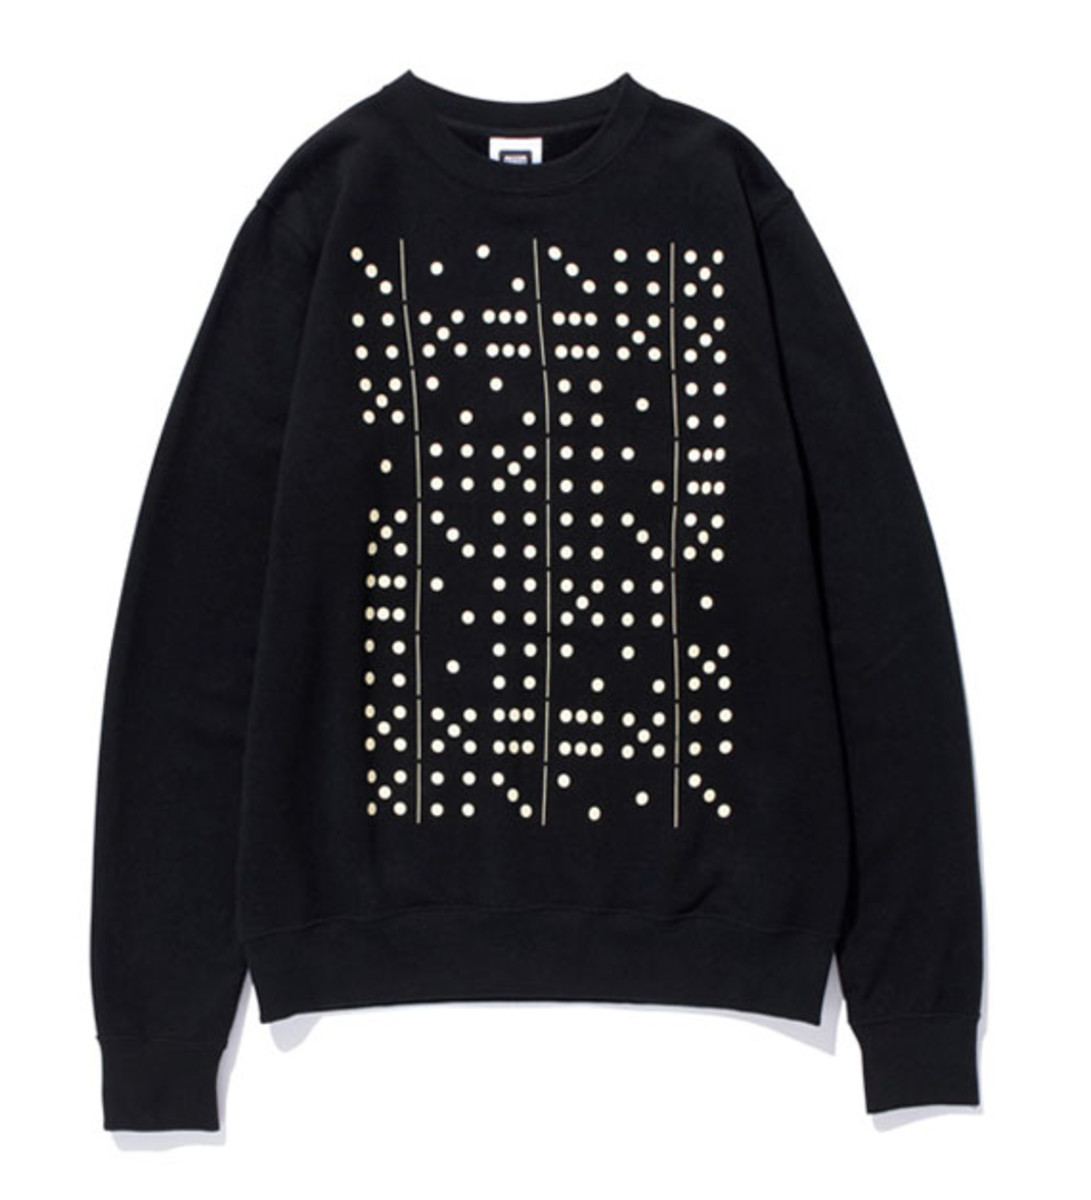 Domino Sweat Shirt Black